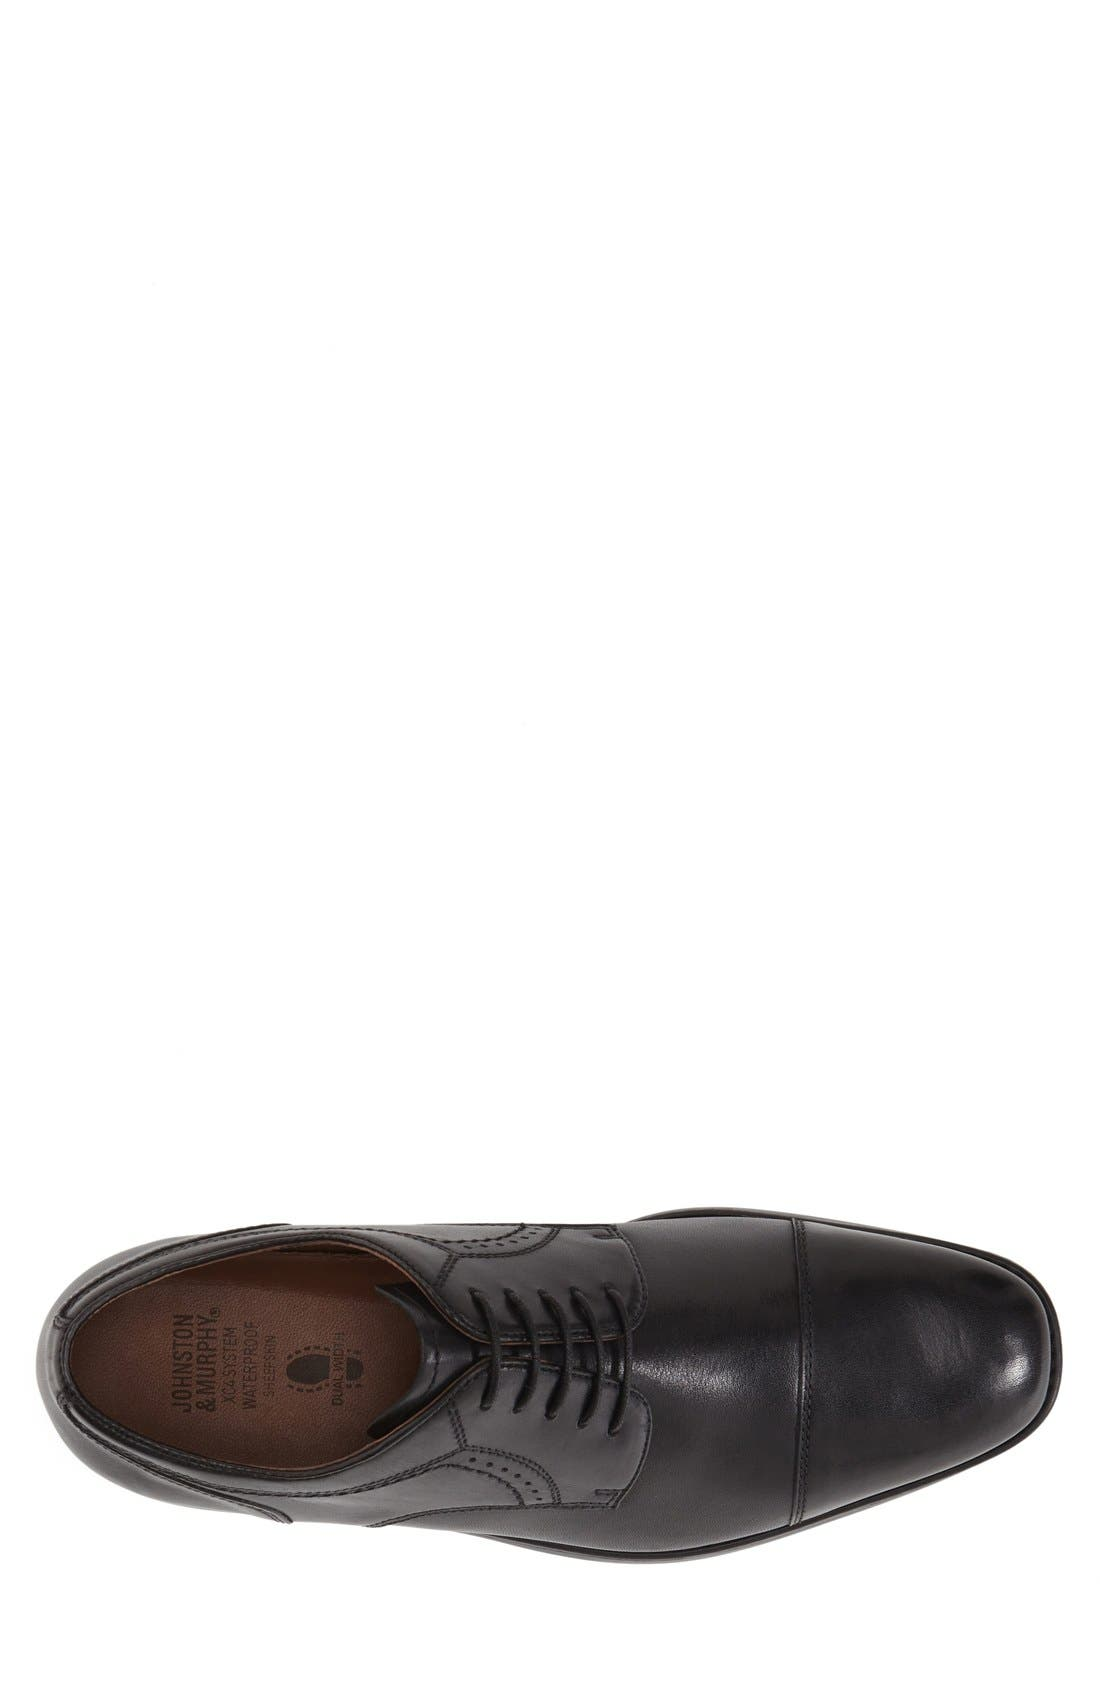 JOHNSTON & MURPHY, 'Branning' Waterproof Cap Toe Derby, Alternate thumbnail 3, color, BLACK